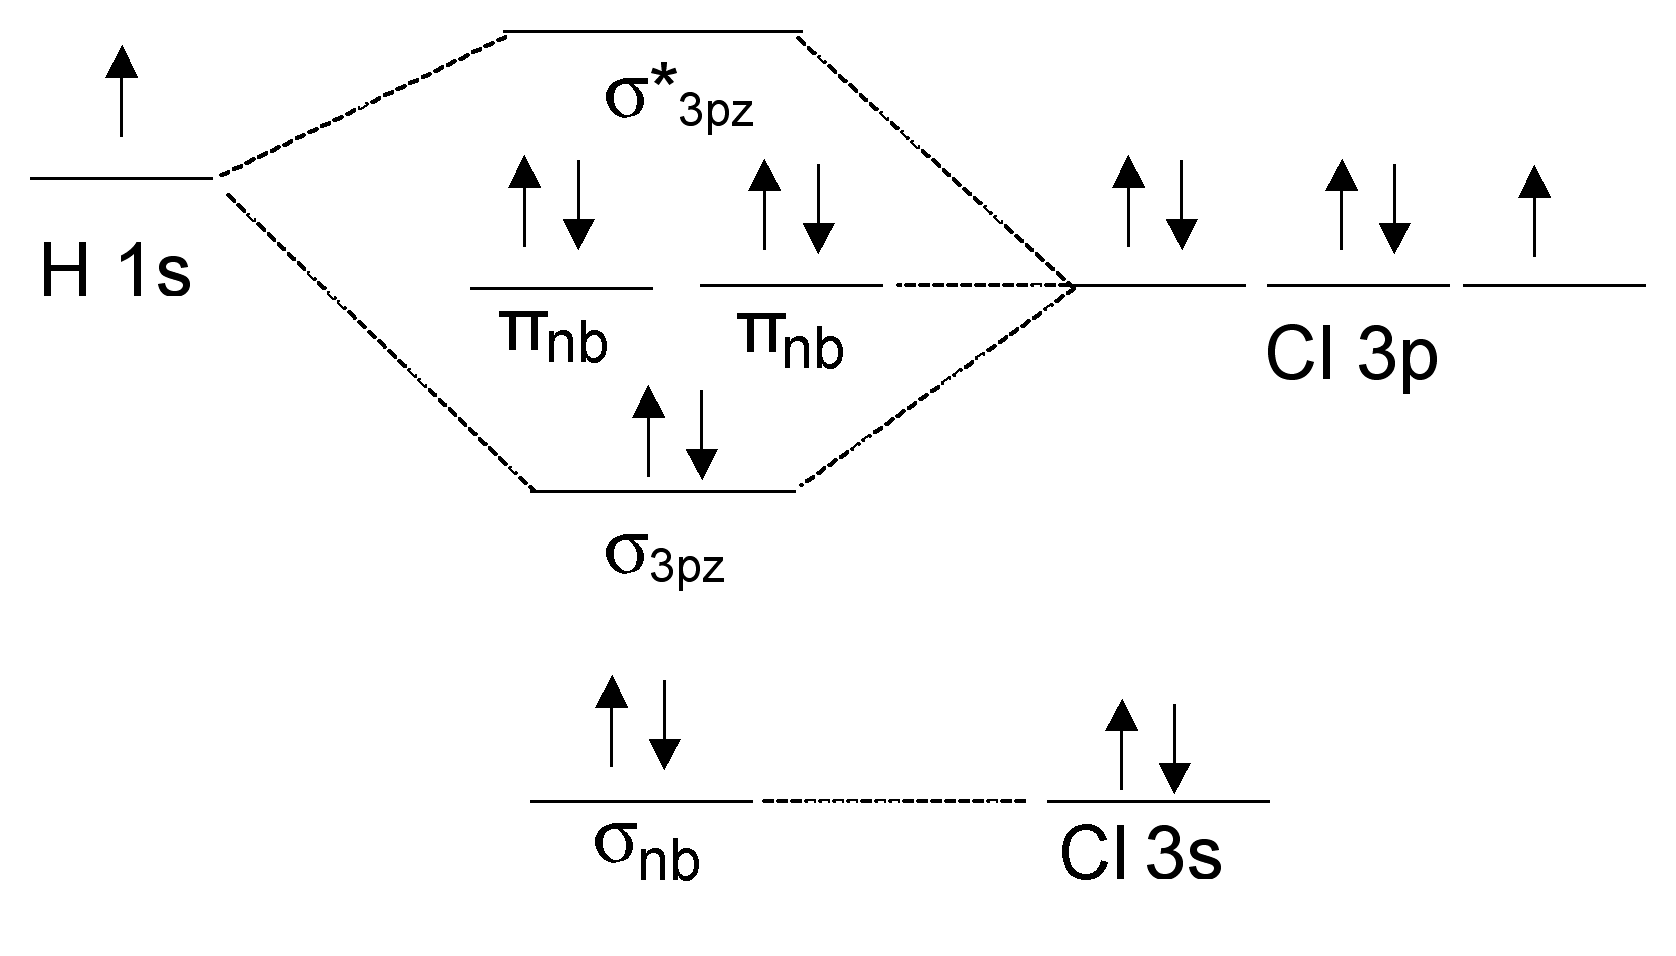 hight resolution of mo diagram of hcl